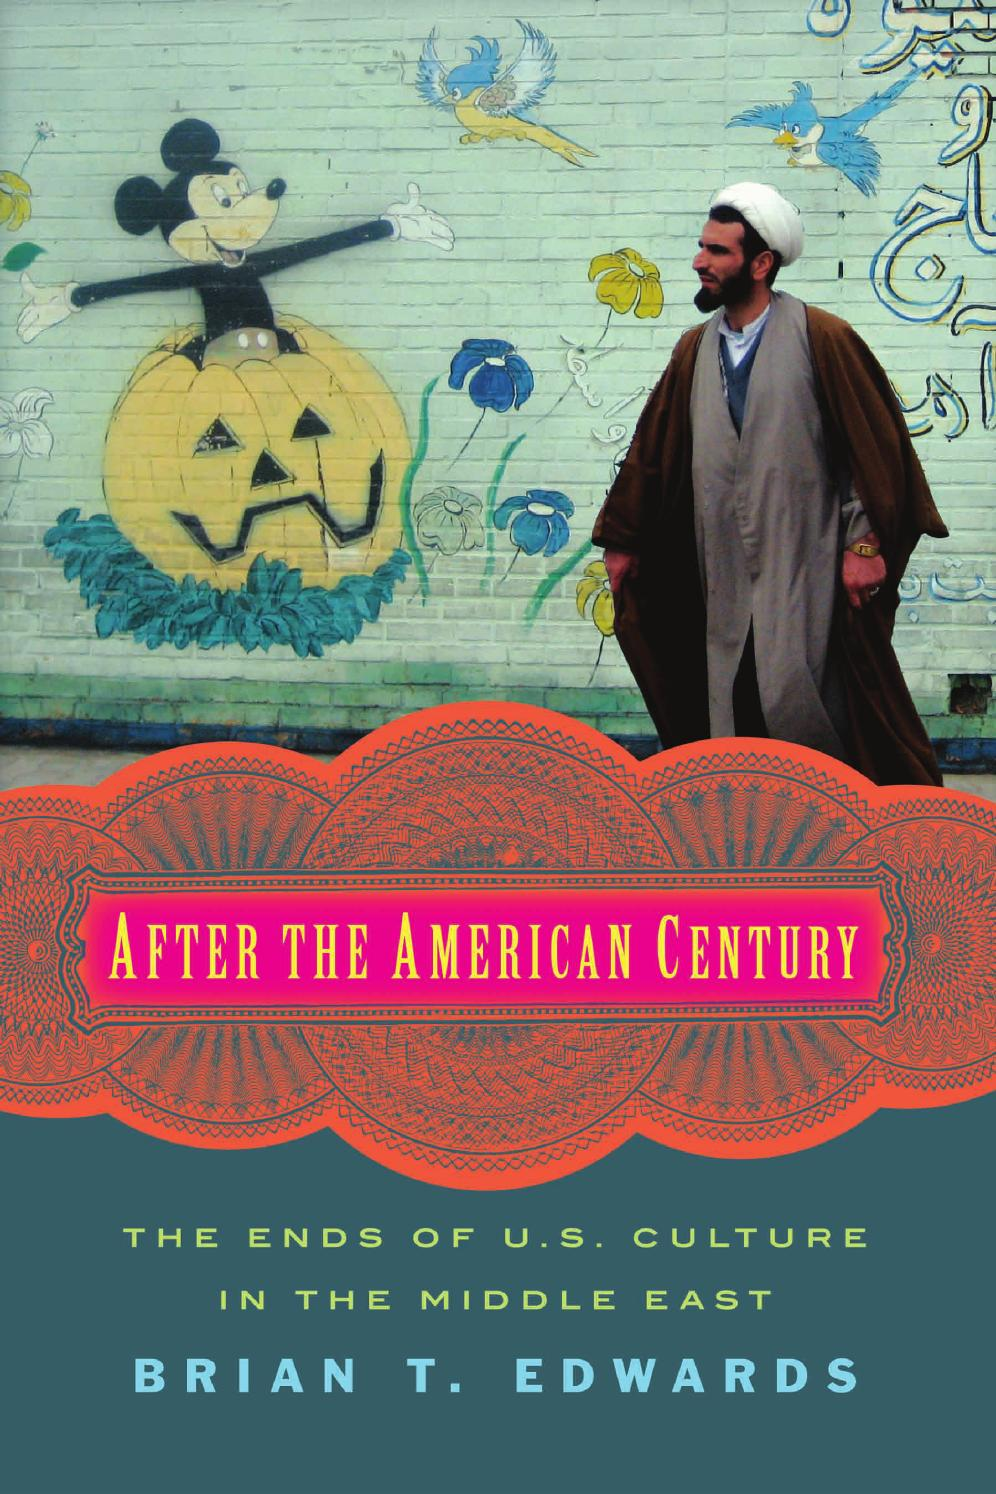 after the american century by brian t edwards by columbia after the american century by brian t edwards by columbia university press issuu